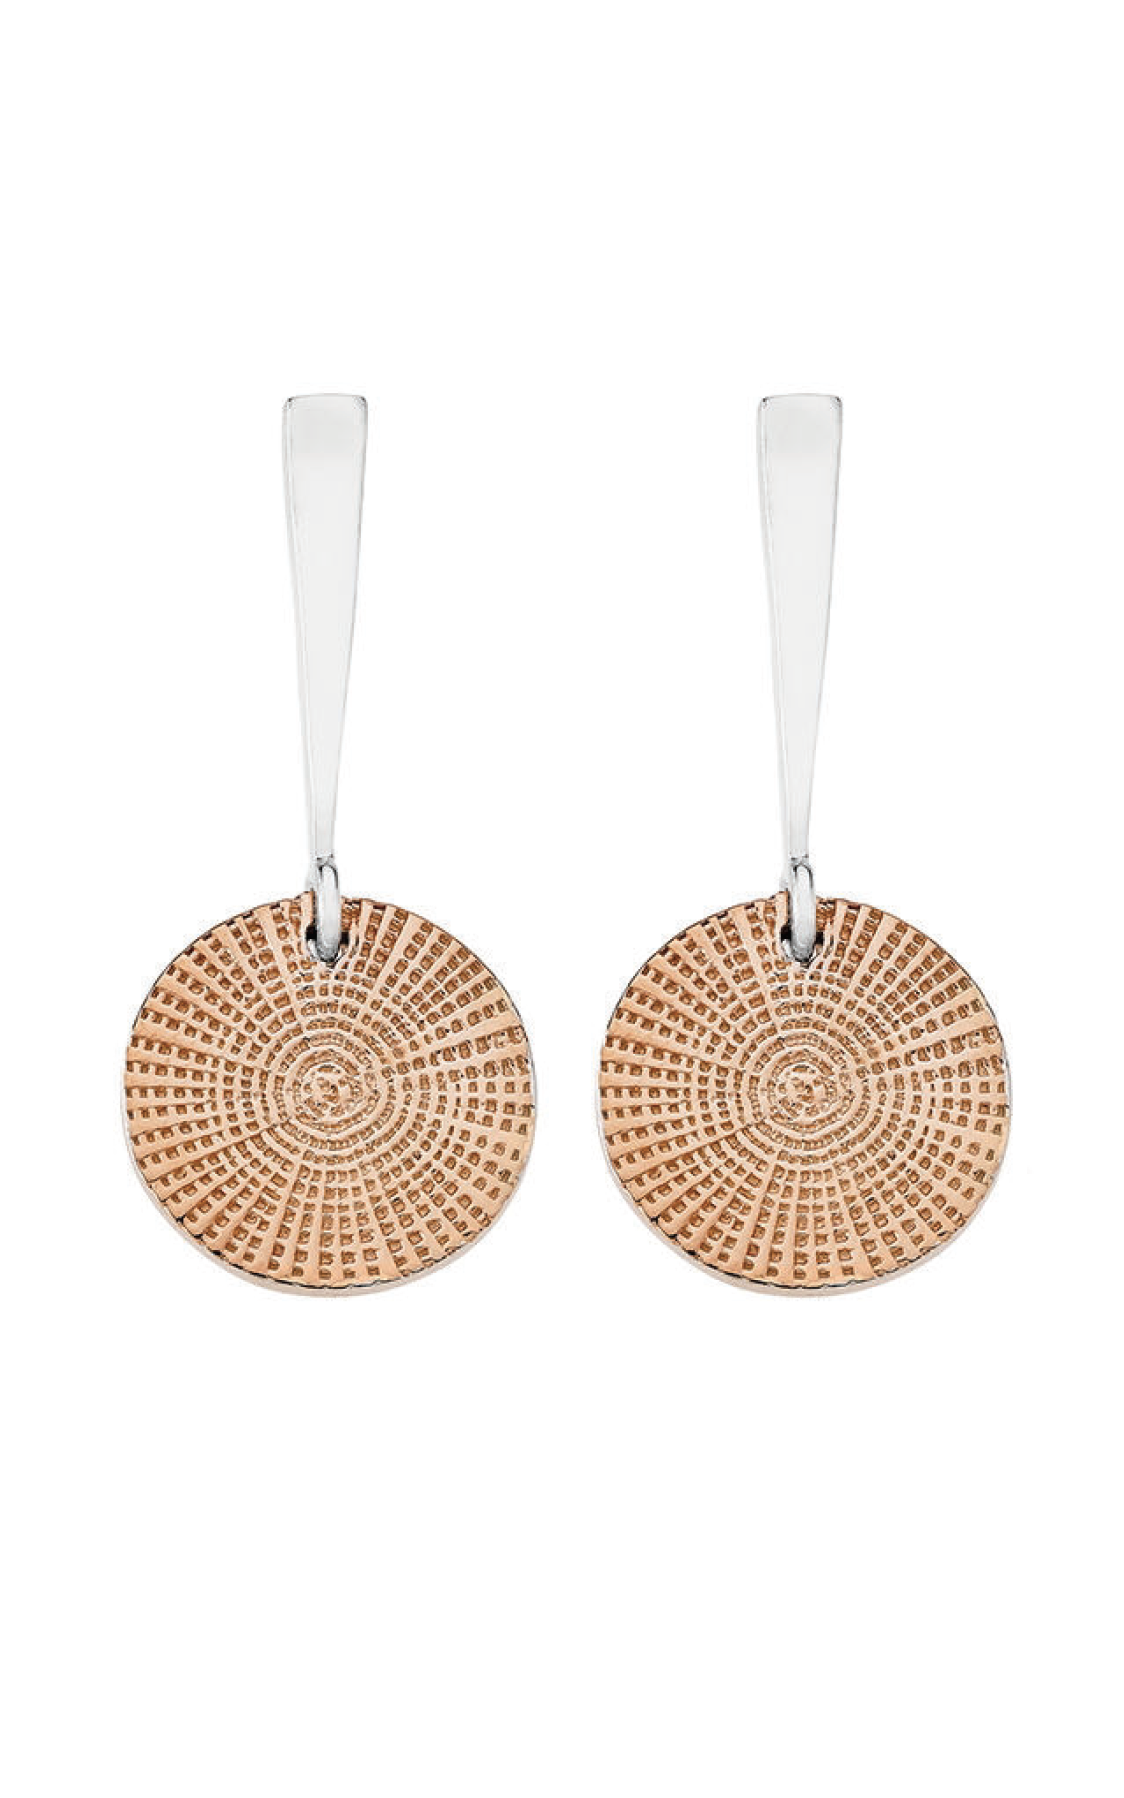 Jorge Revilla Earrings Earring PE-104-0535RH product image